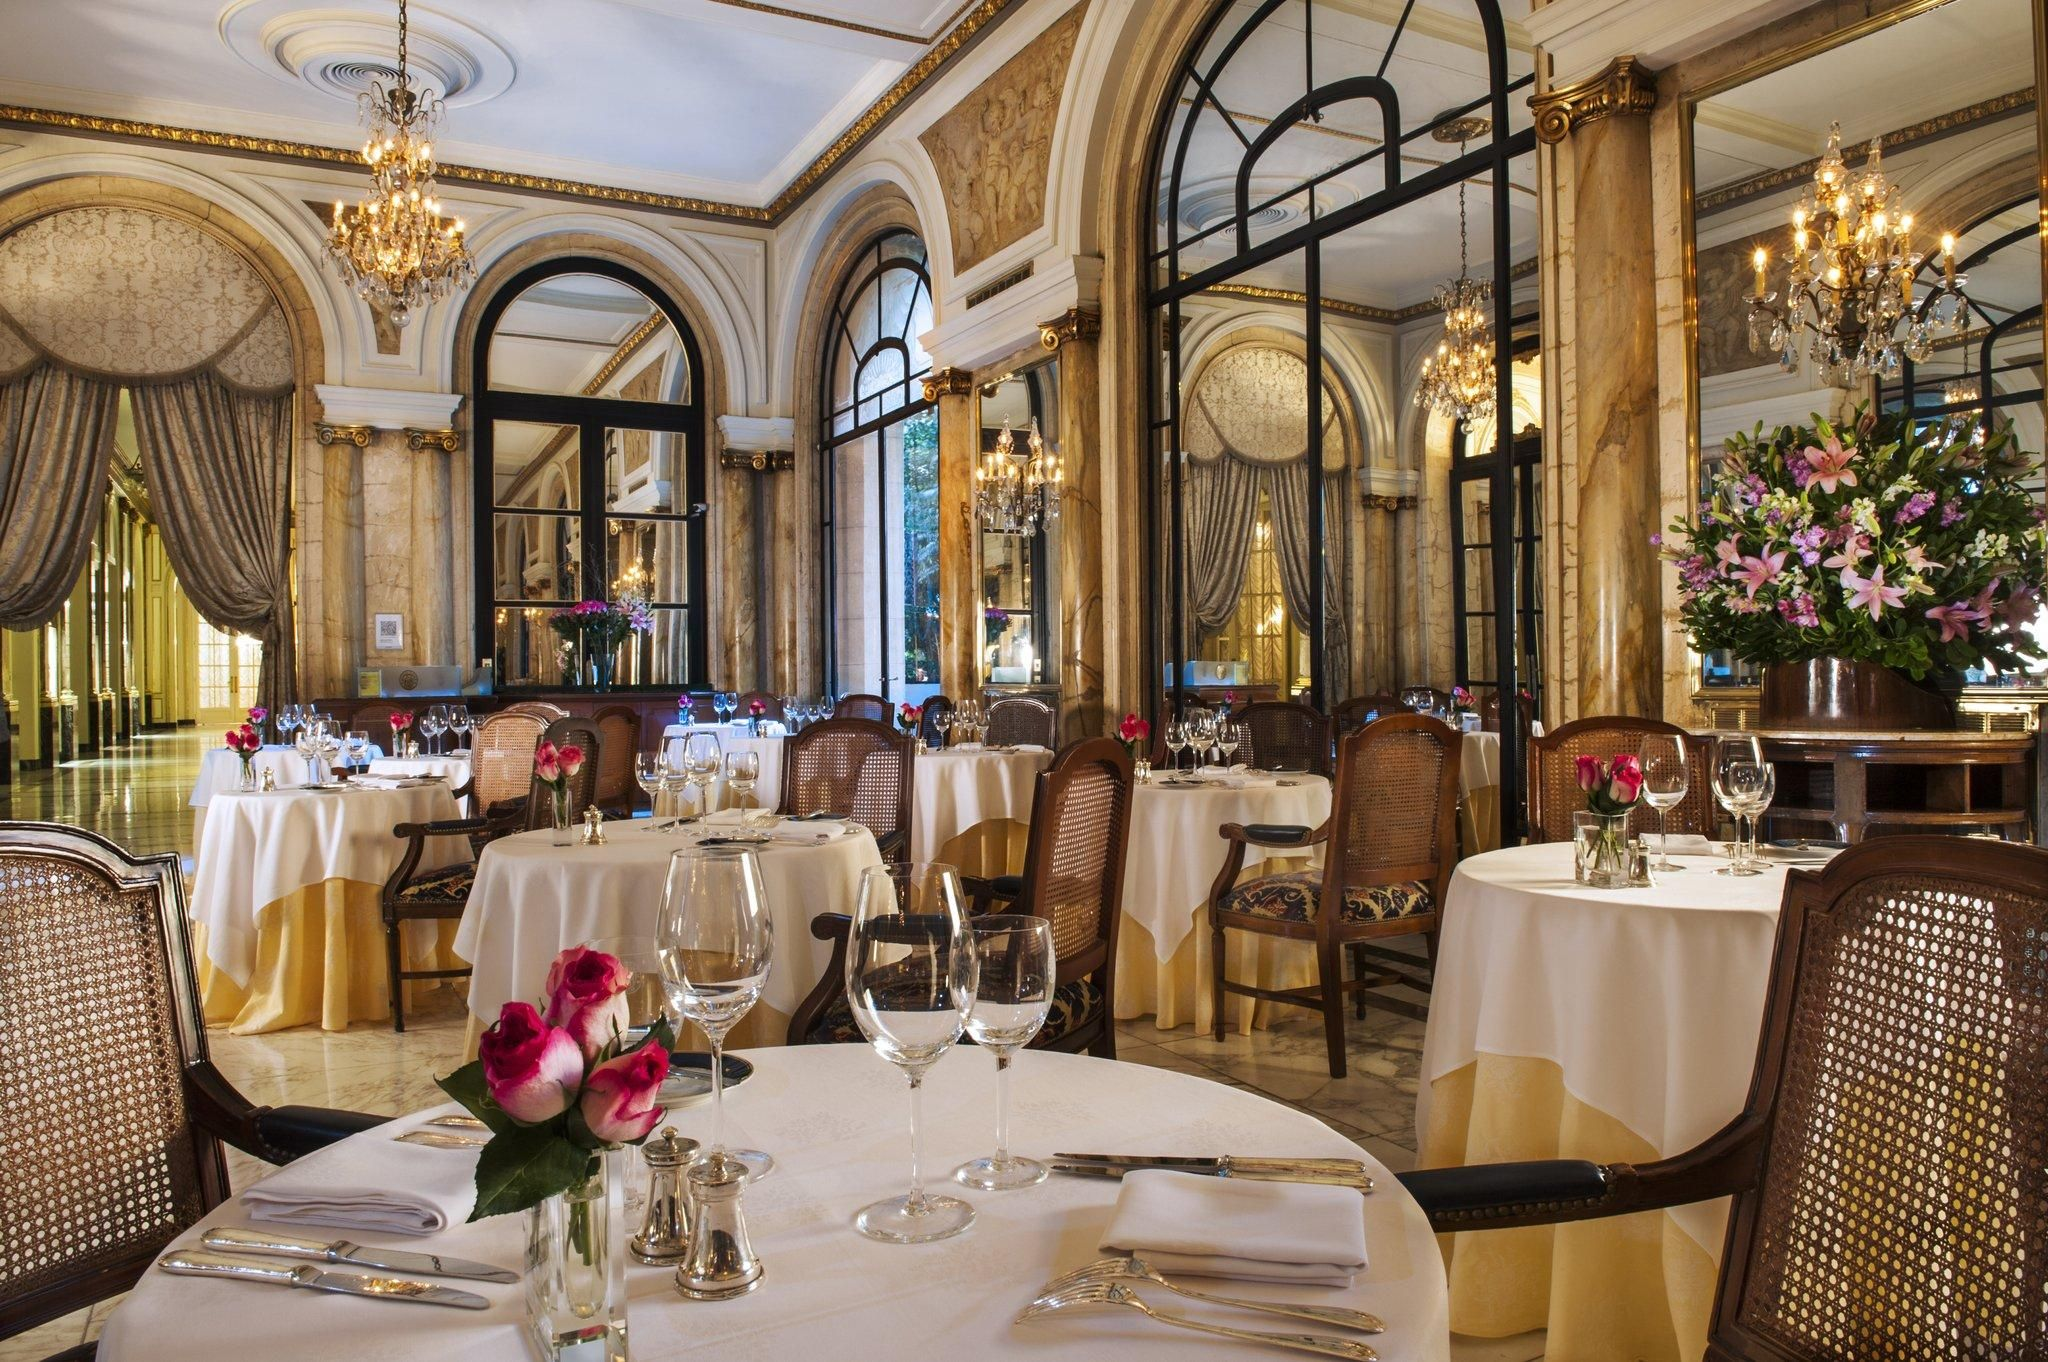 alvear palace hotel buenos aires argentina hotel